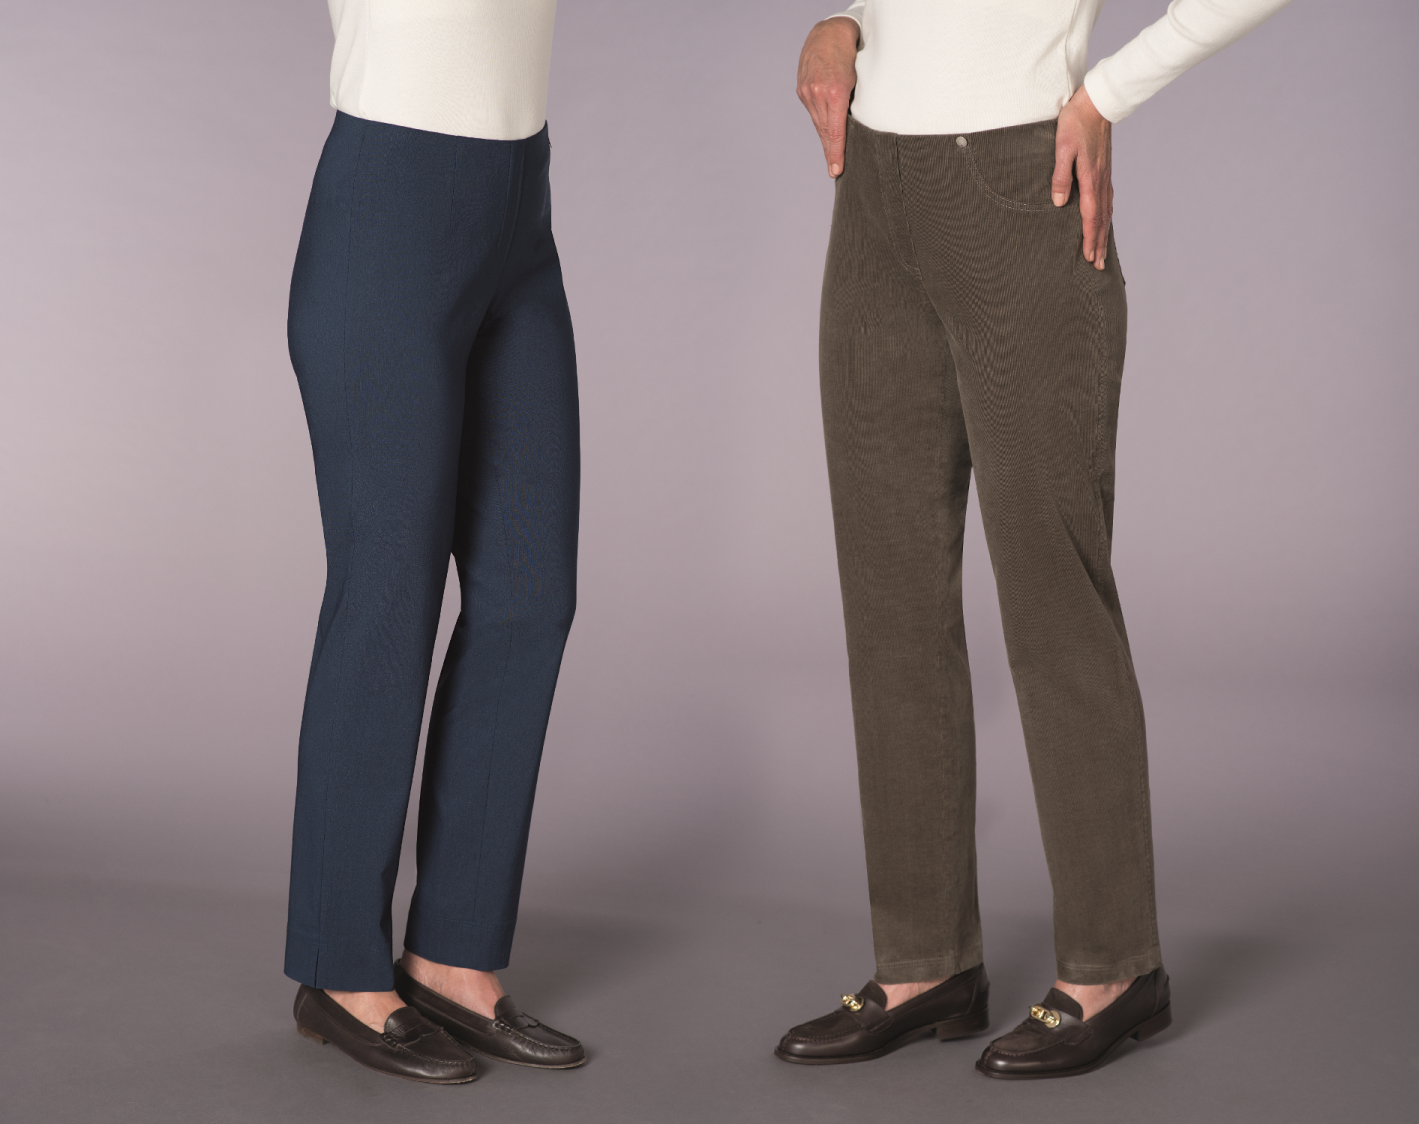 House of Bruar Robell Trousers in navy stretch and brown needlecord